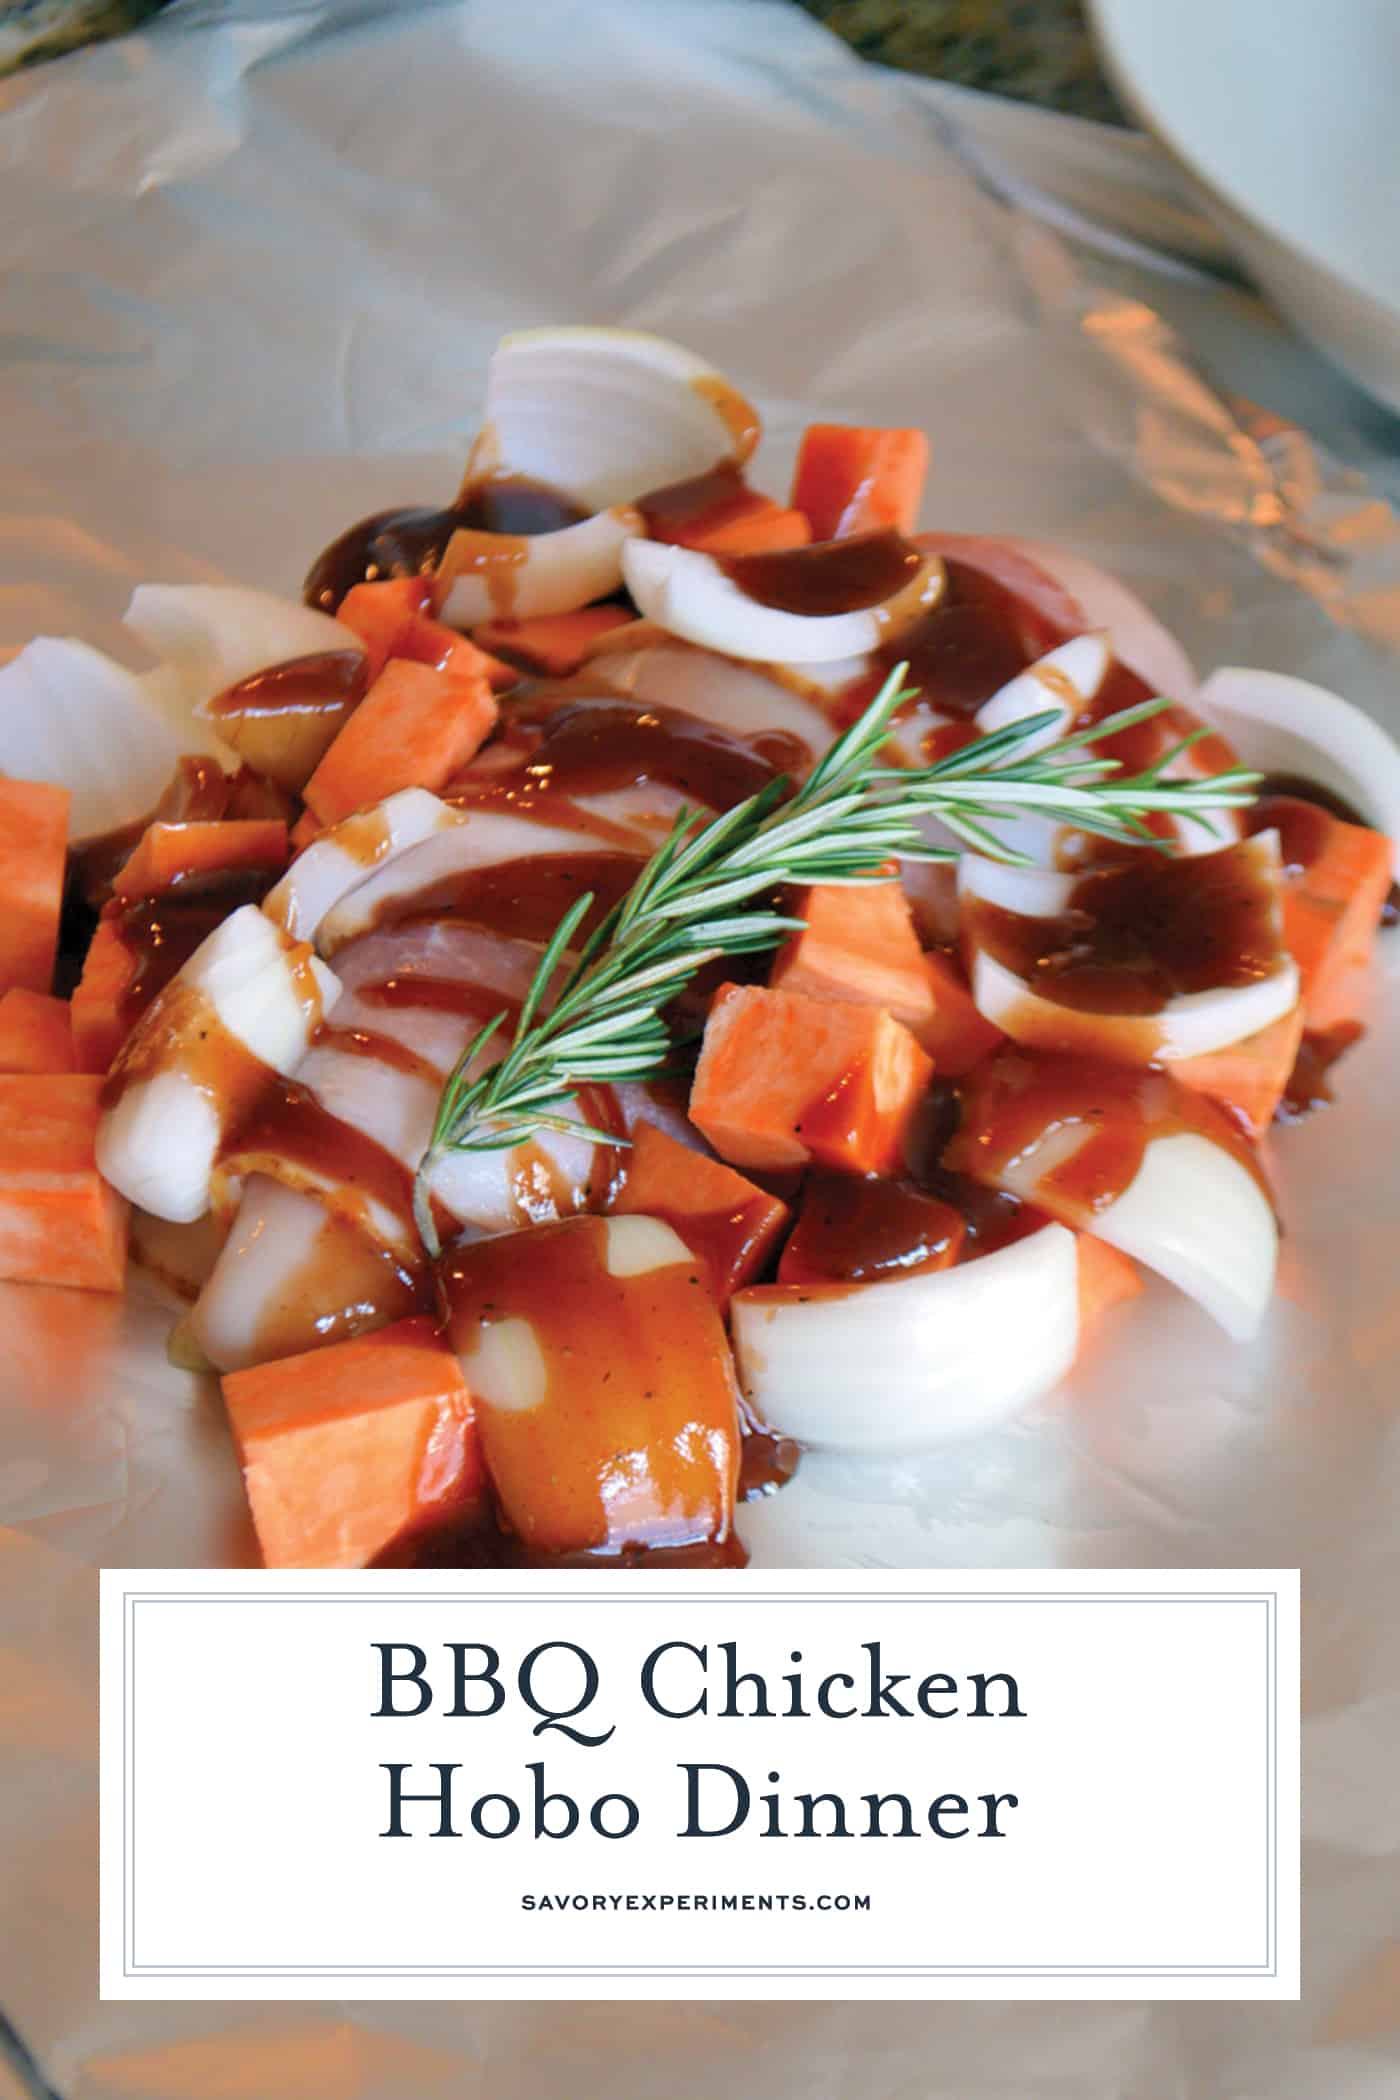 This BBQ Chicken Hobo Dinner is a great dinner option for families on the go. These chicken foil packets are packed full of flavor for a weeknight meal! #hobodinner #chickenfoilpackets #hobopackets www.savoryexperiments.com